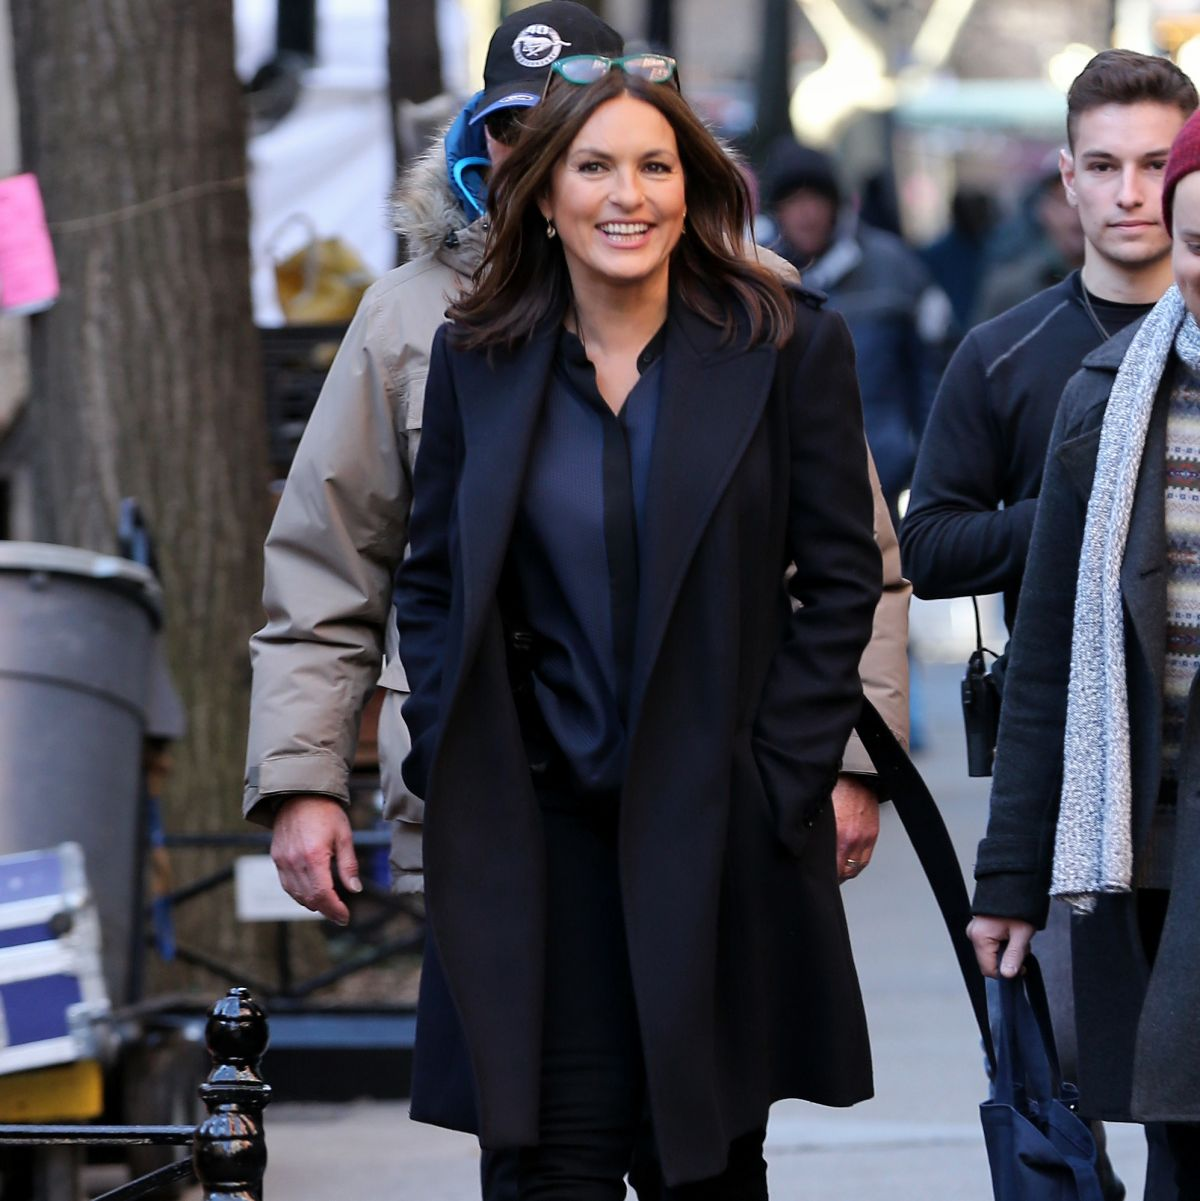 Mariska Hargitay Out In NYC